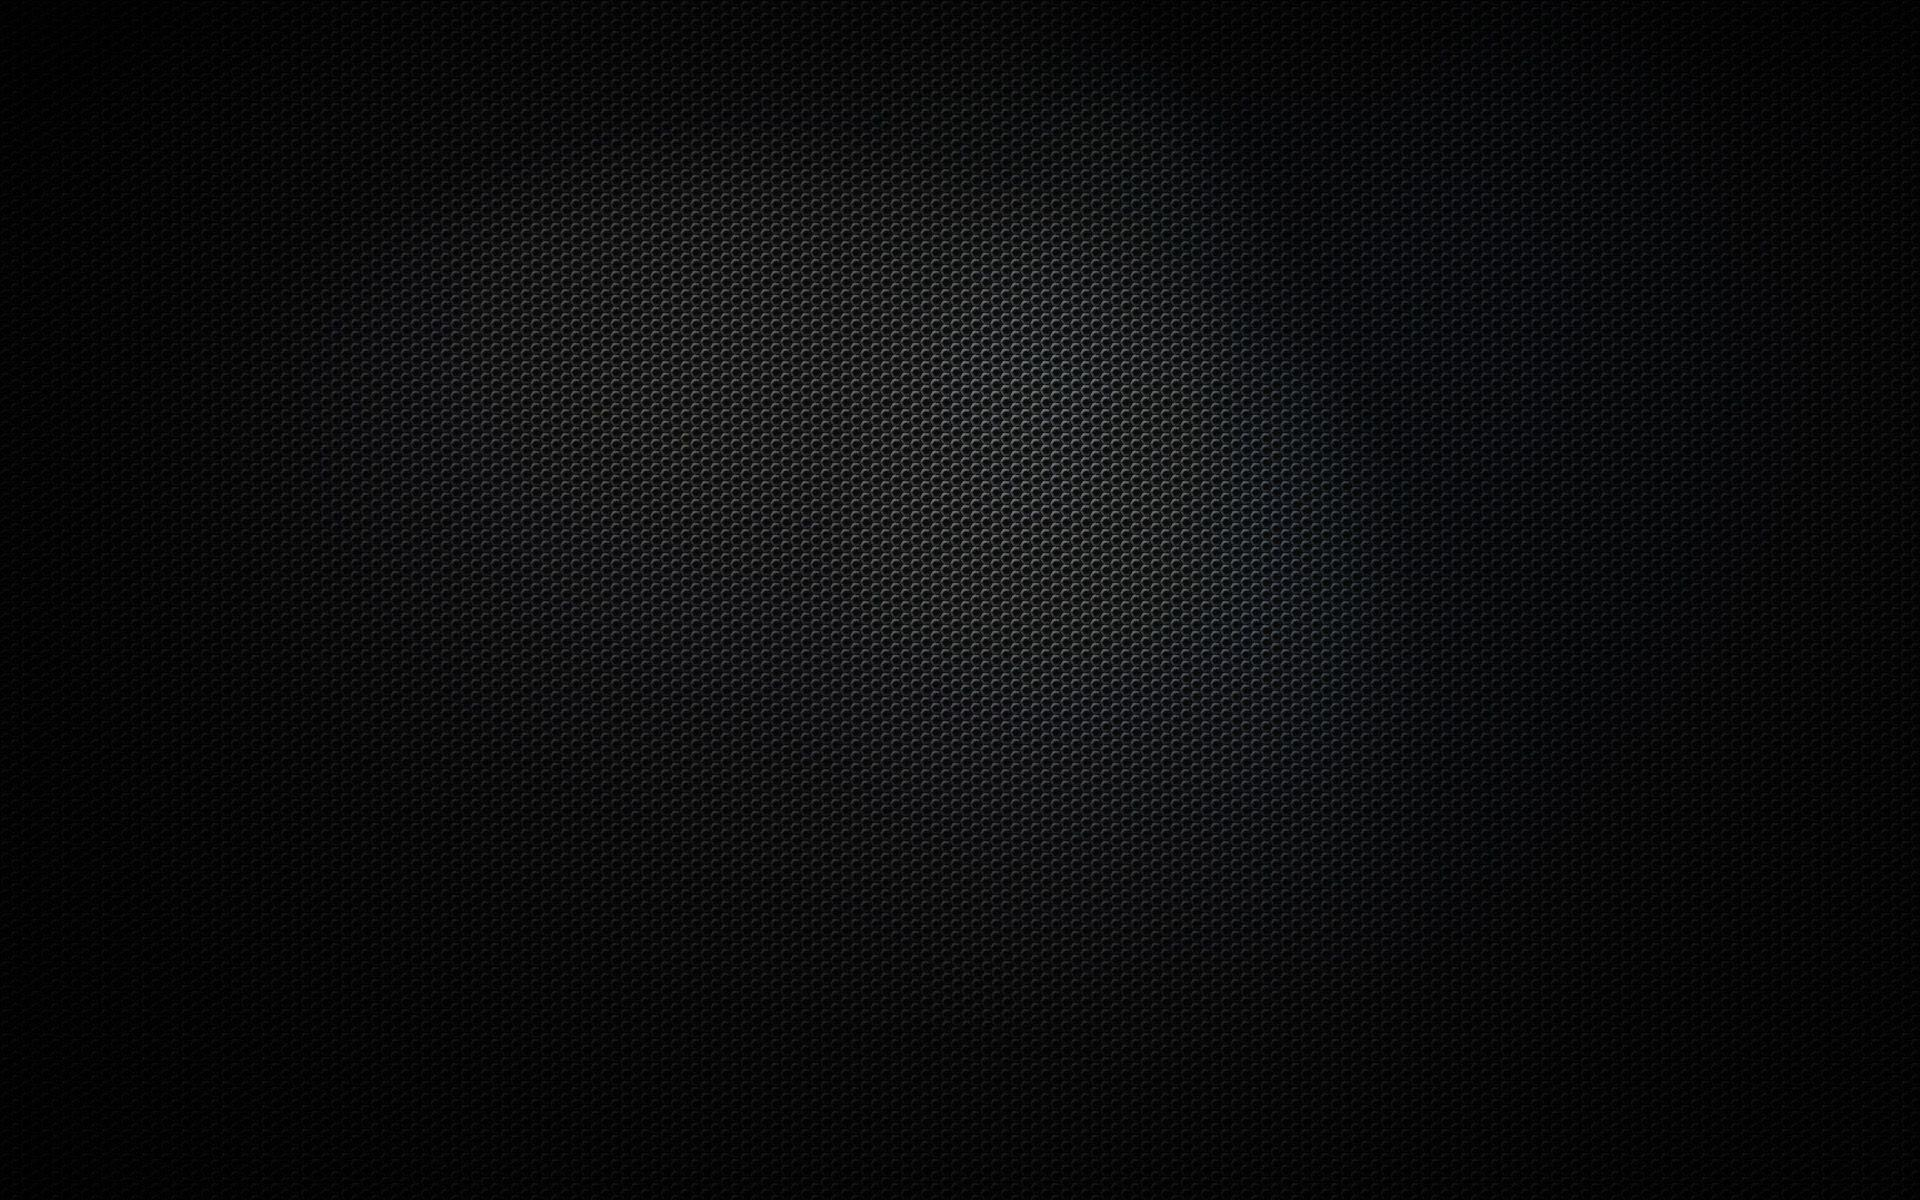 dark abstract backgrounds wallpaper